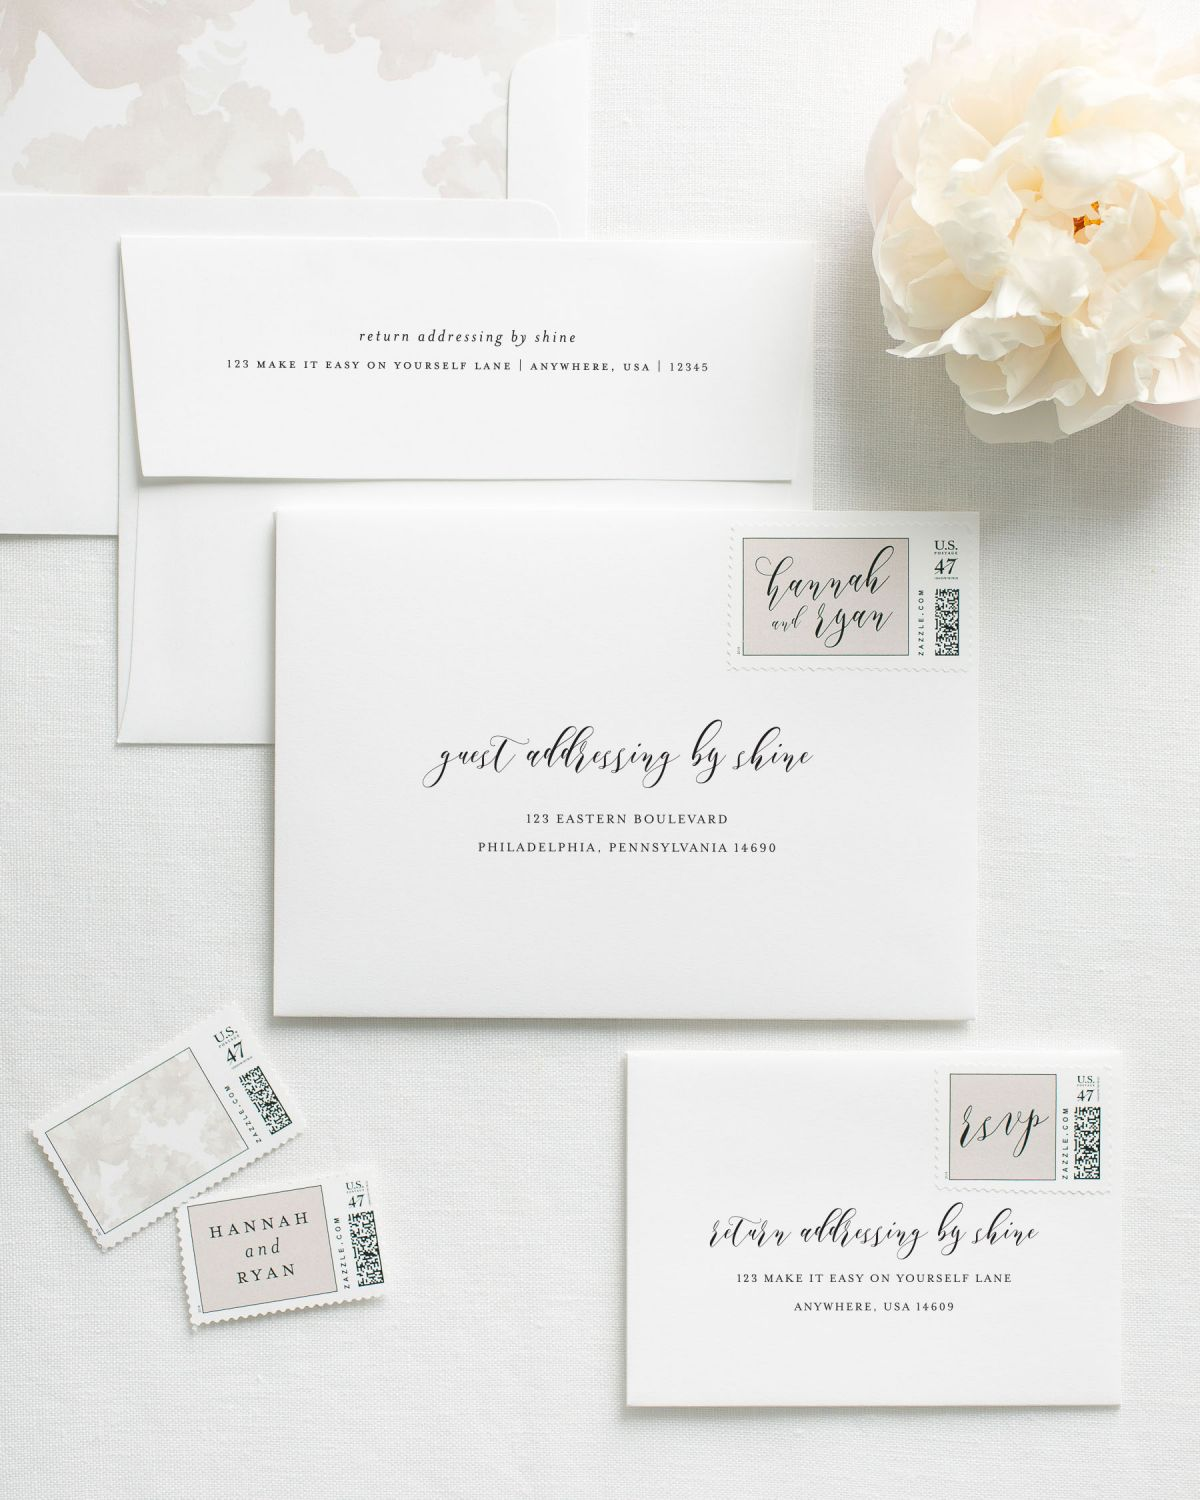 Guest Addressed Envelopes for Wedding Invitations